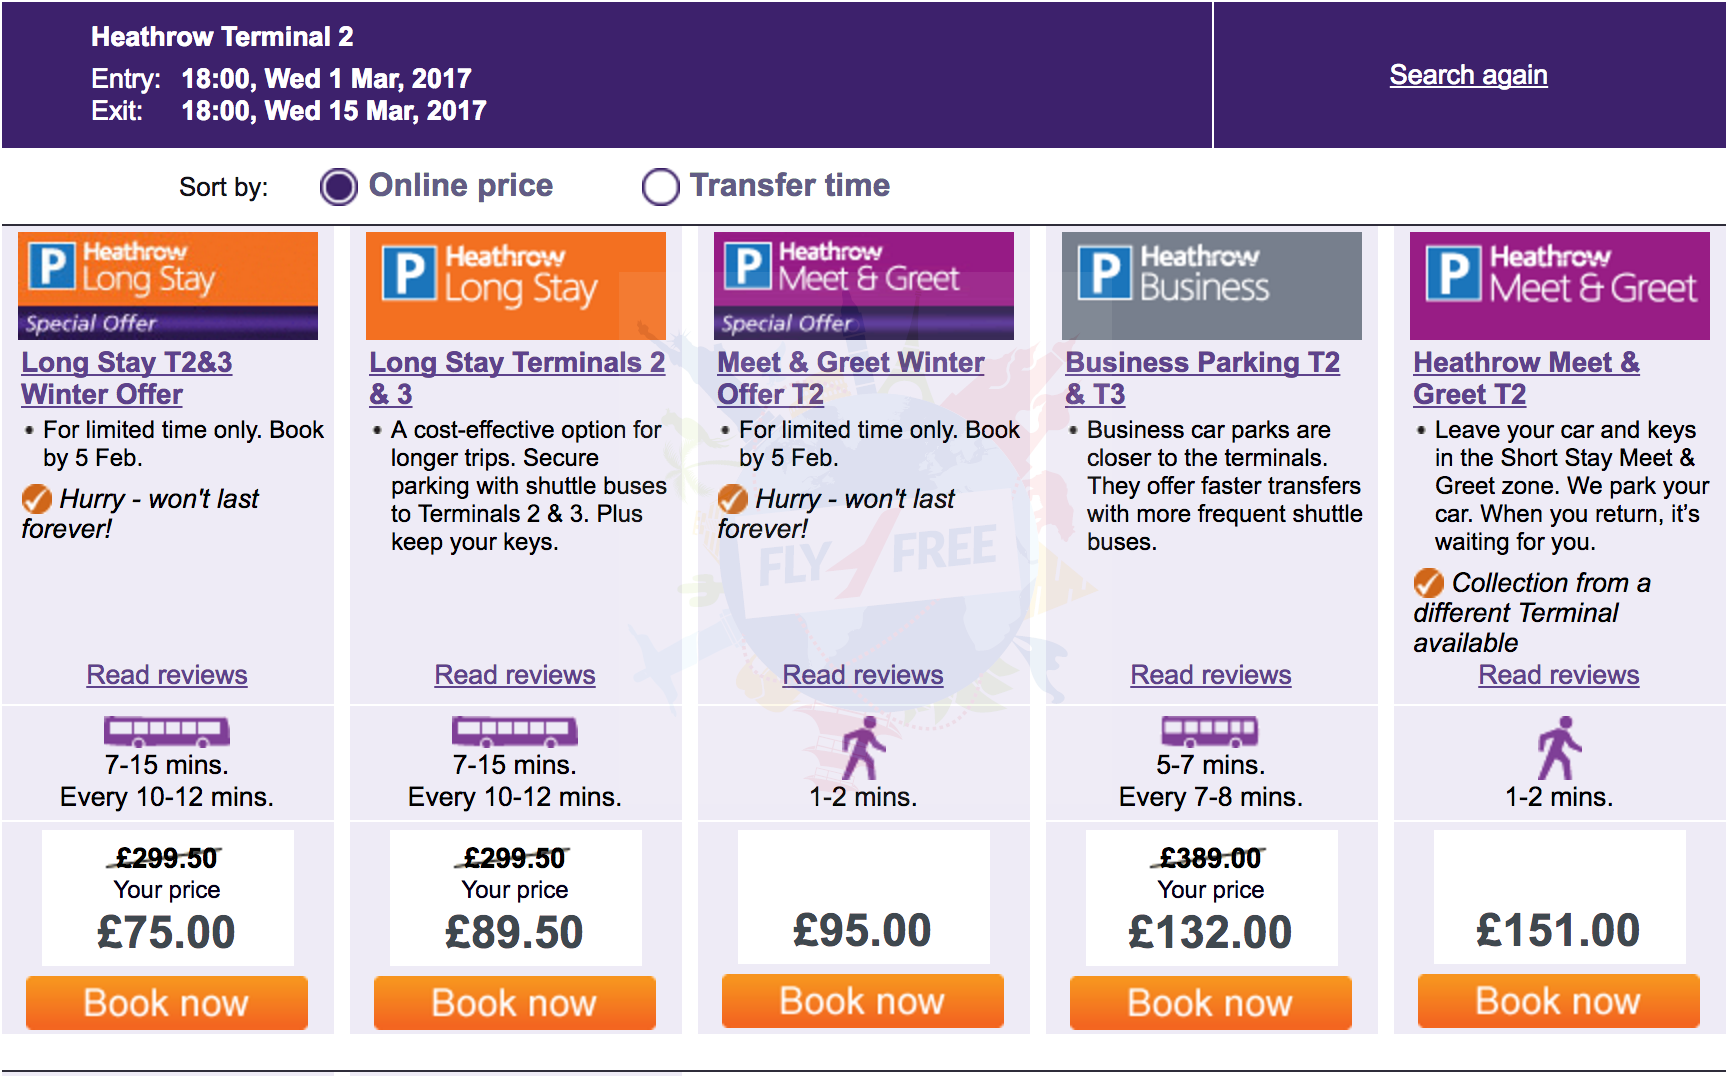 Last Day Heathrow Airport Parking Winter Sale 536 Per Day